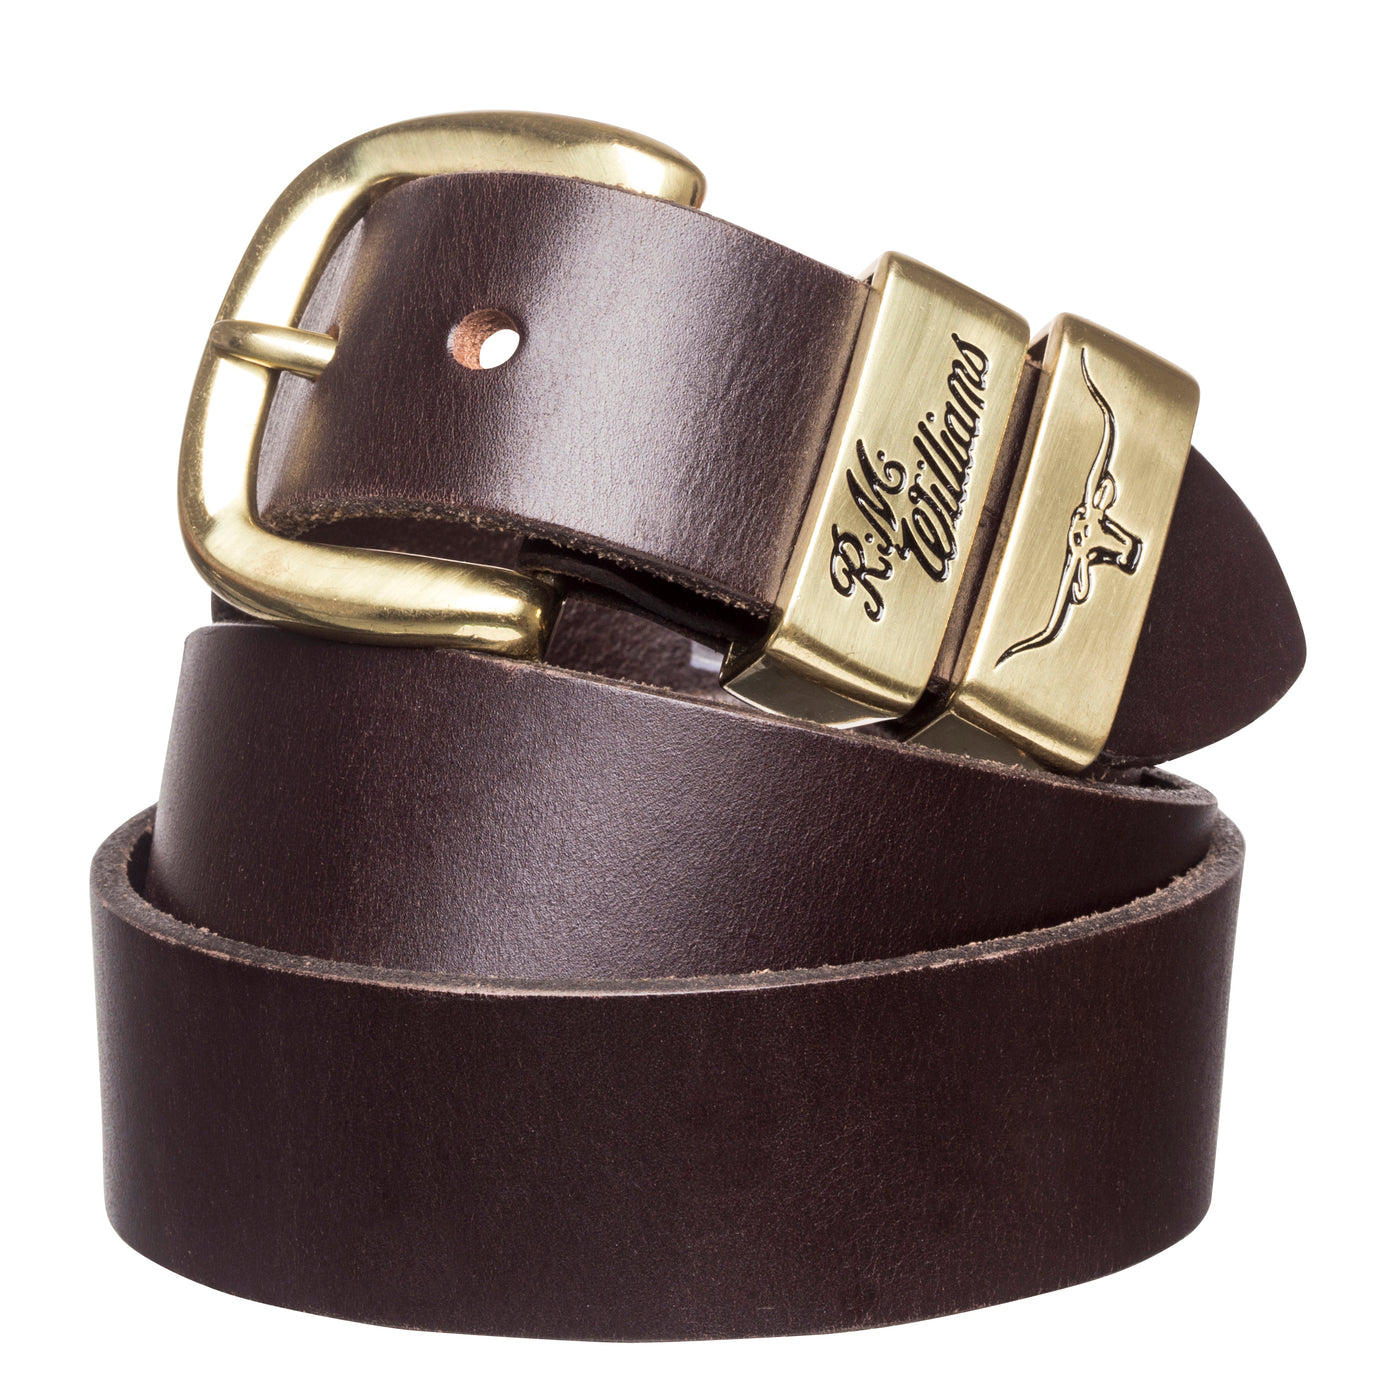 RMW 1 1/2 inch 3 Piece Belt Solid Hide